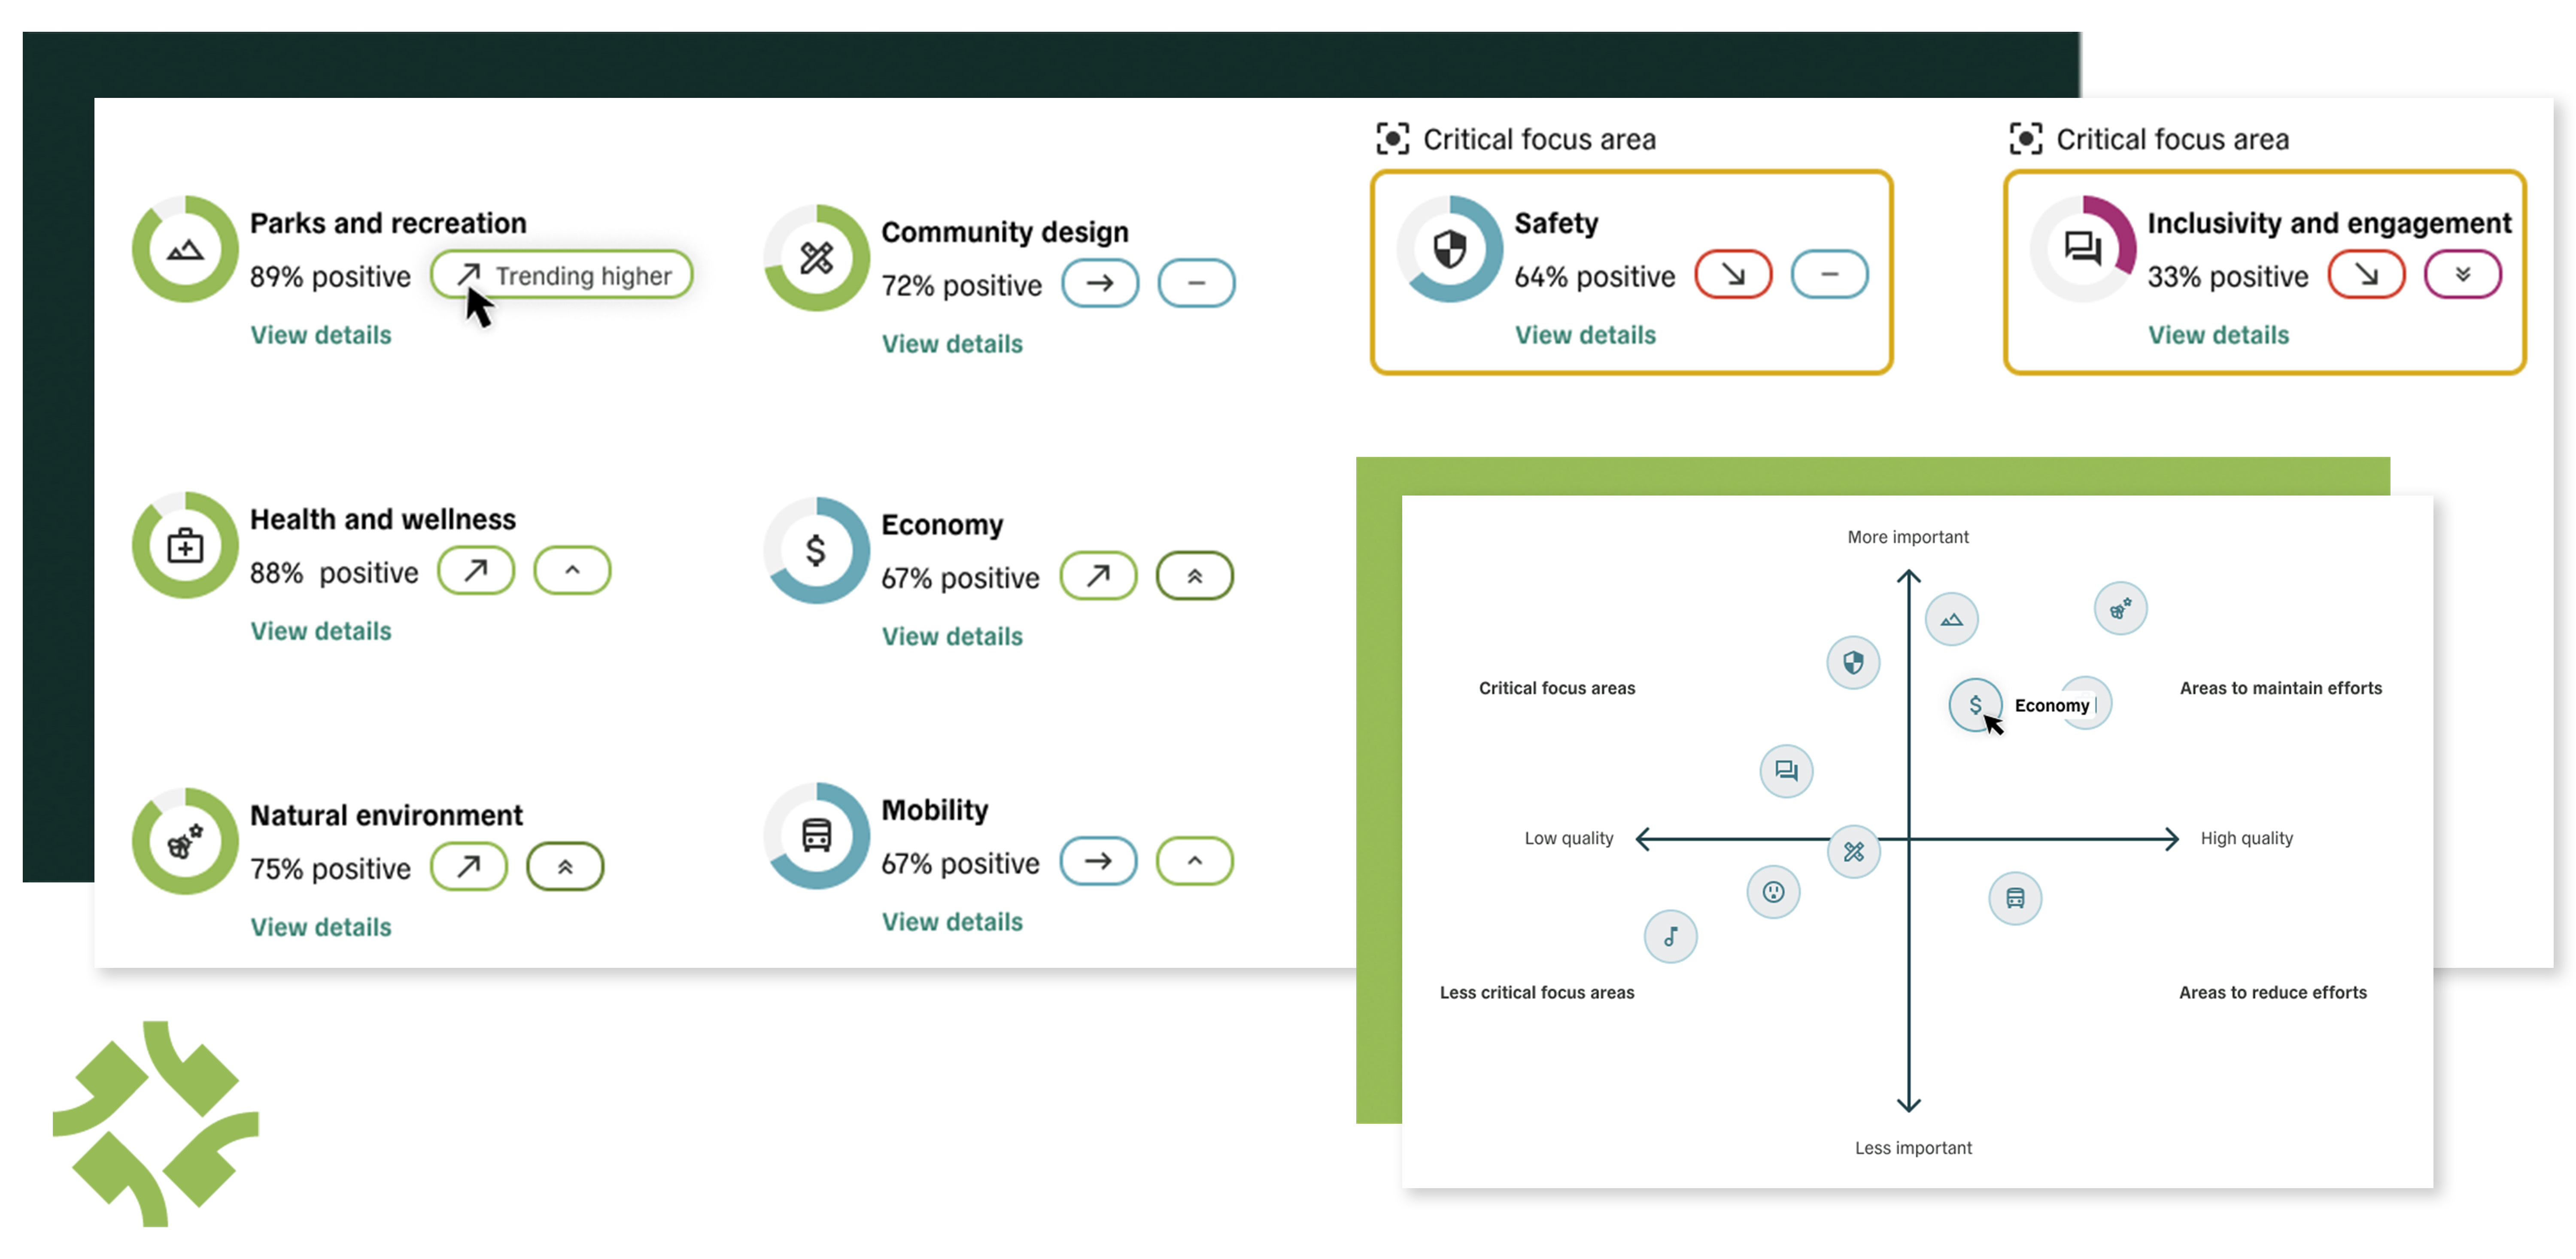 arpa_engagment_package_dashboards